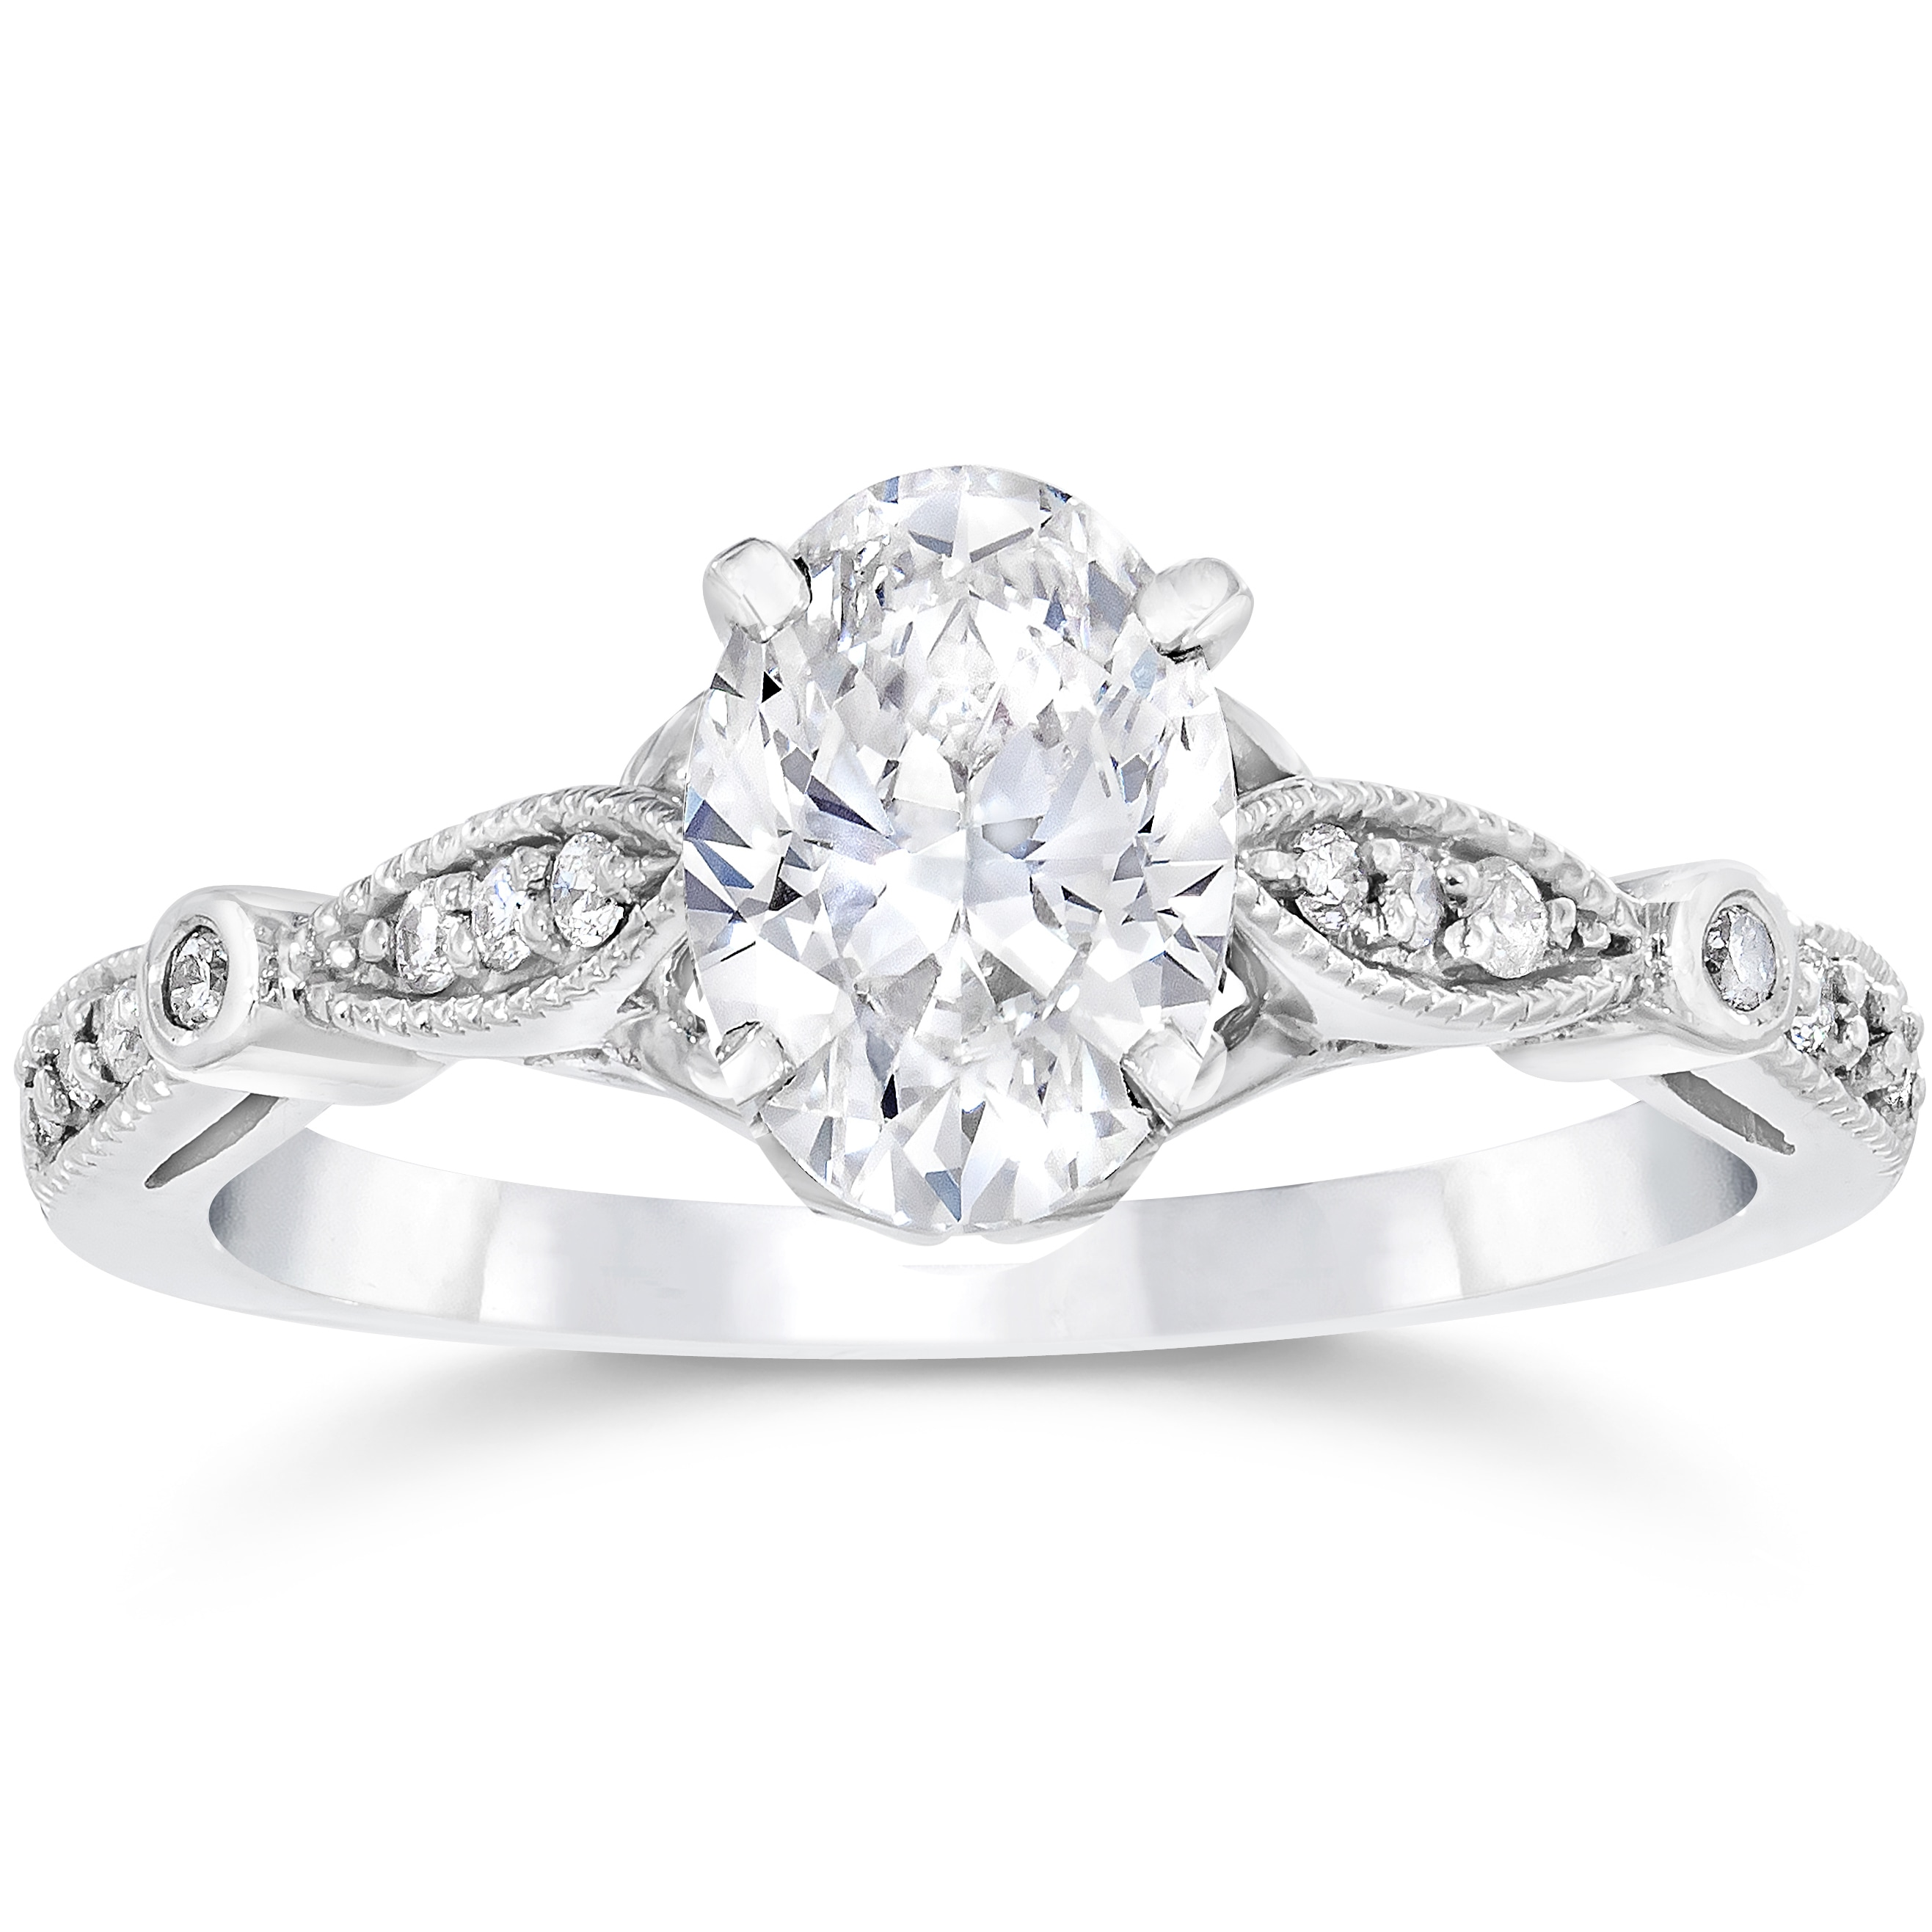 jewelry rings wedding engagement oval oerlp designs